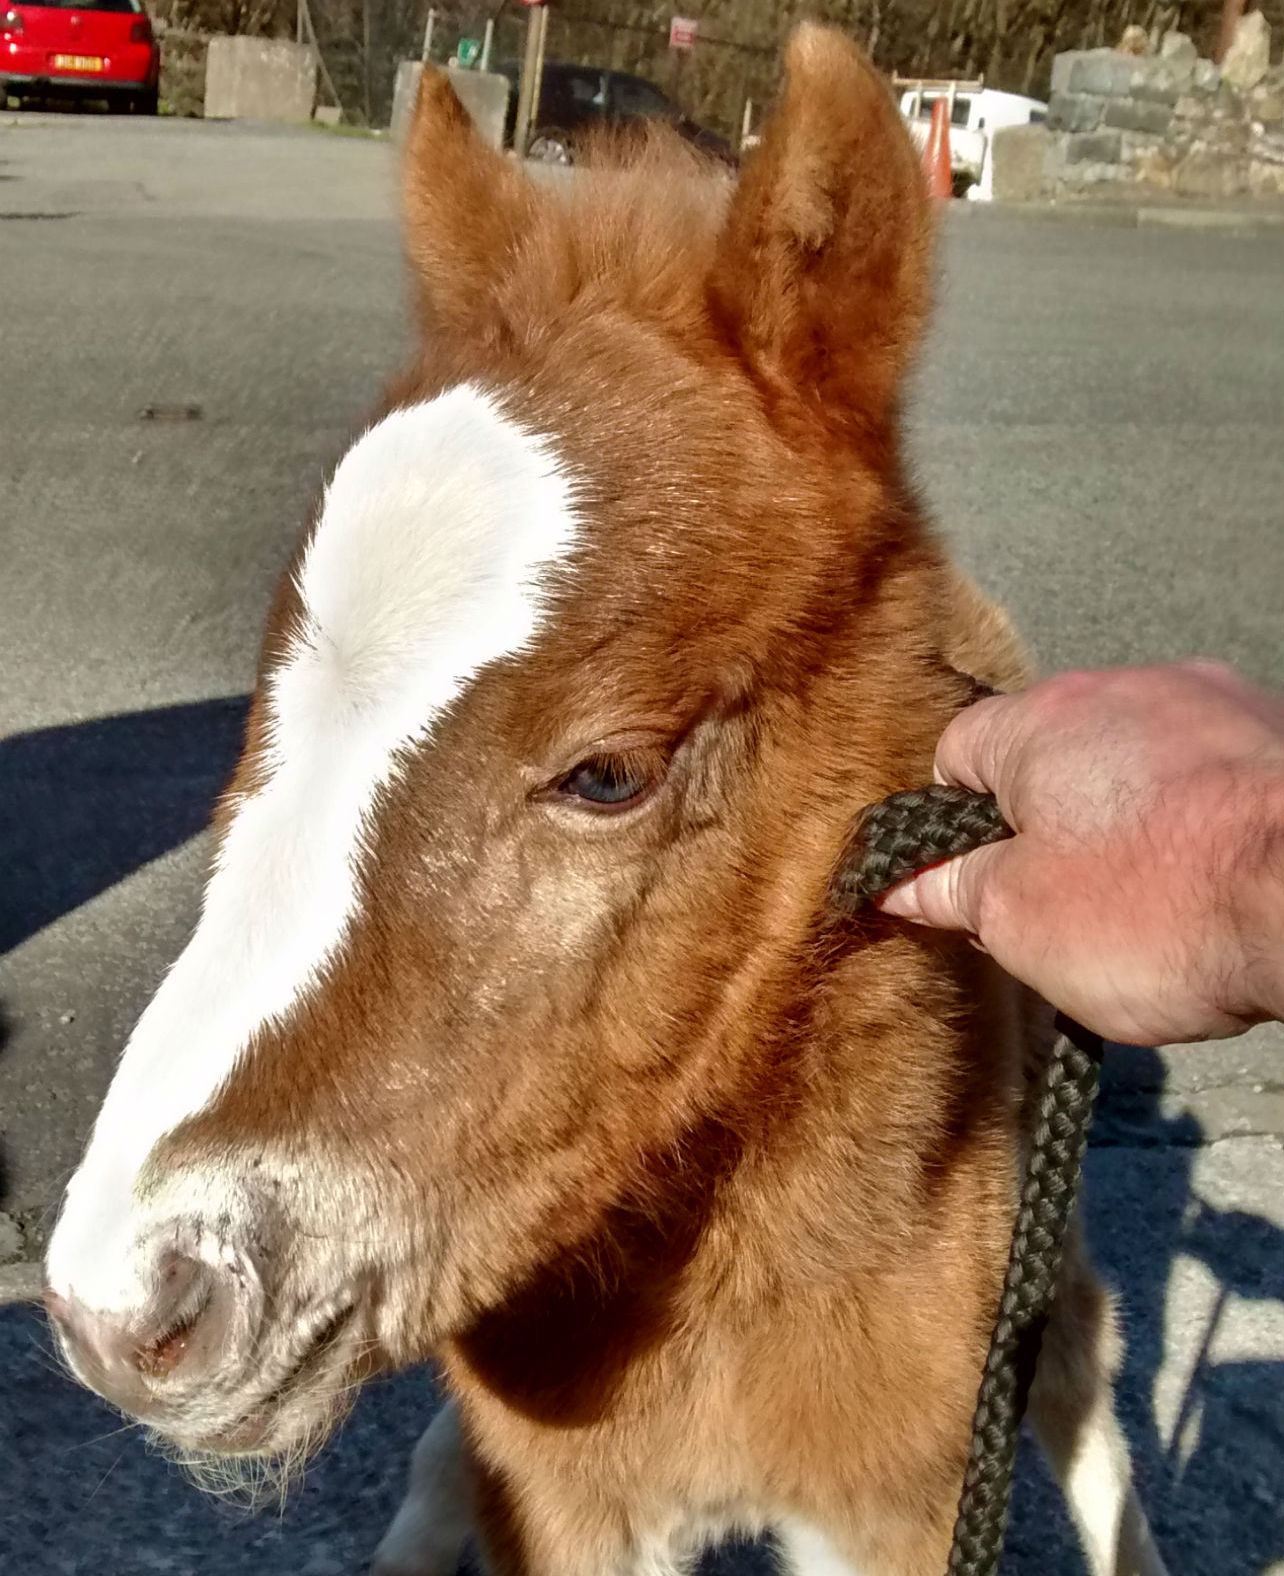 The two-year-old foal rescued from the Conwy Mountain